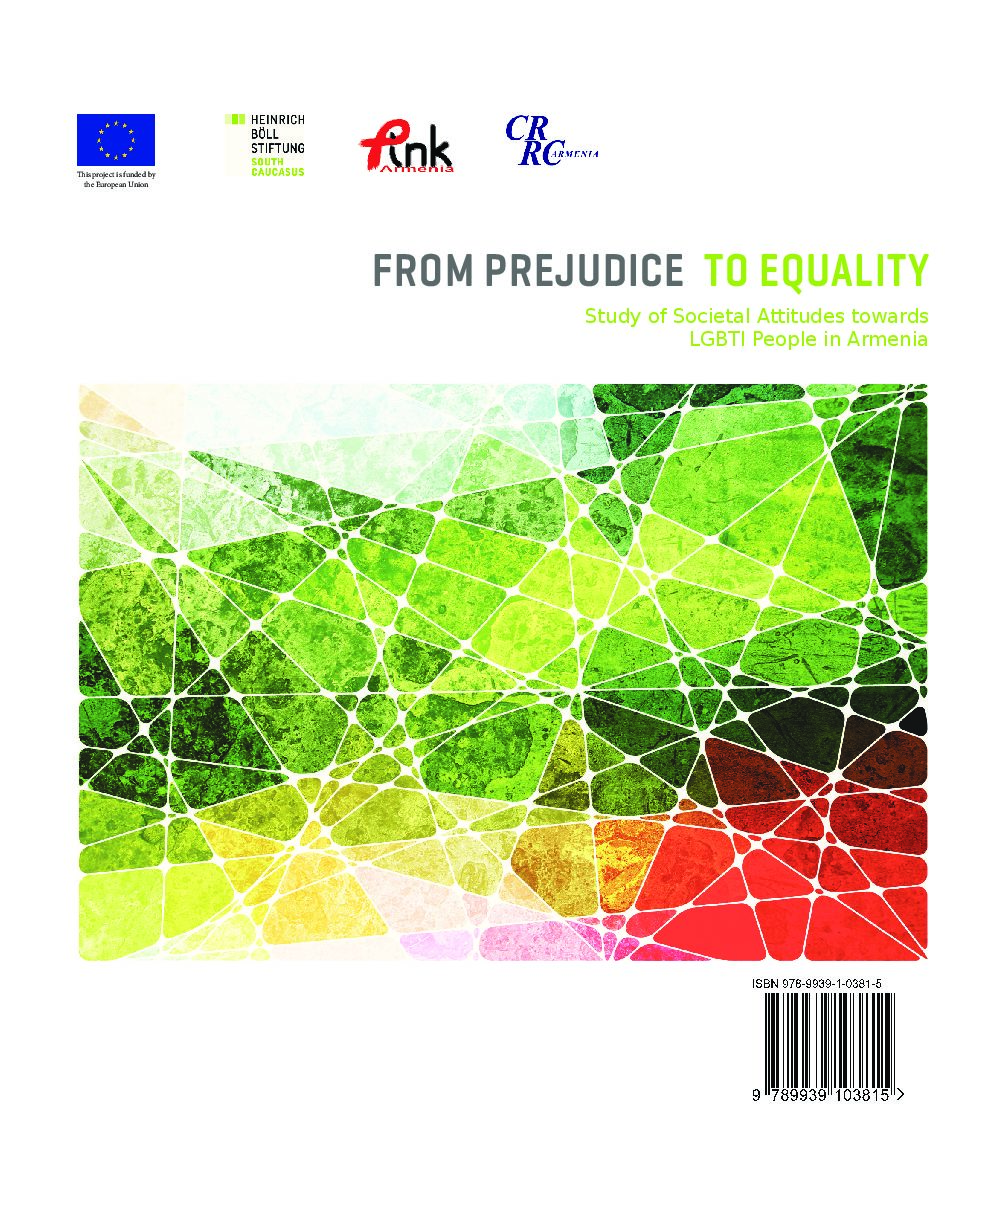 From Prejudice to Equality. Study of societal attitudes towards LGBTI people in Armenia